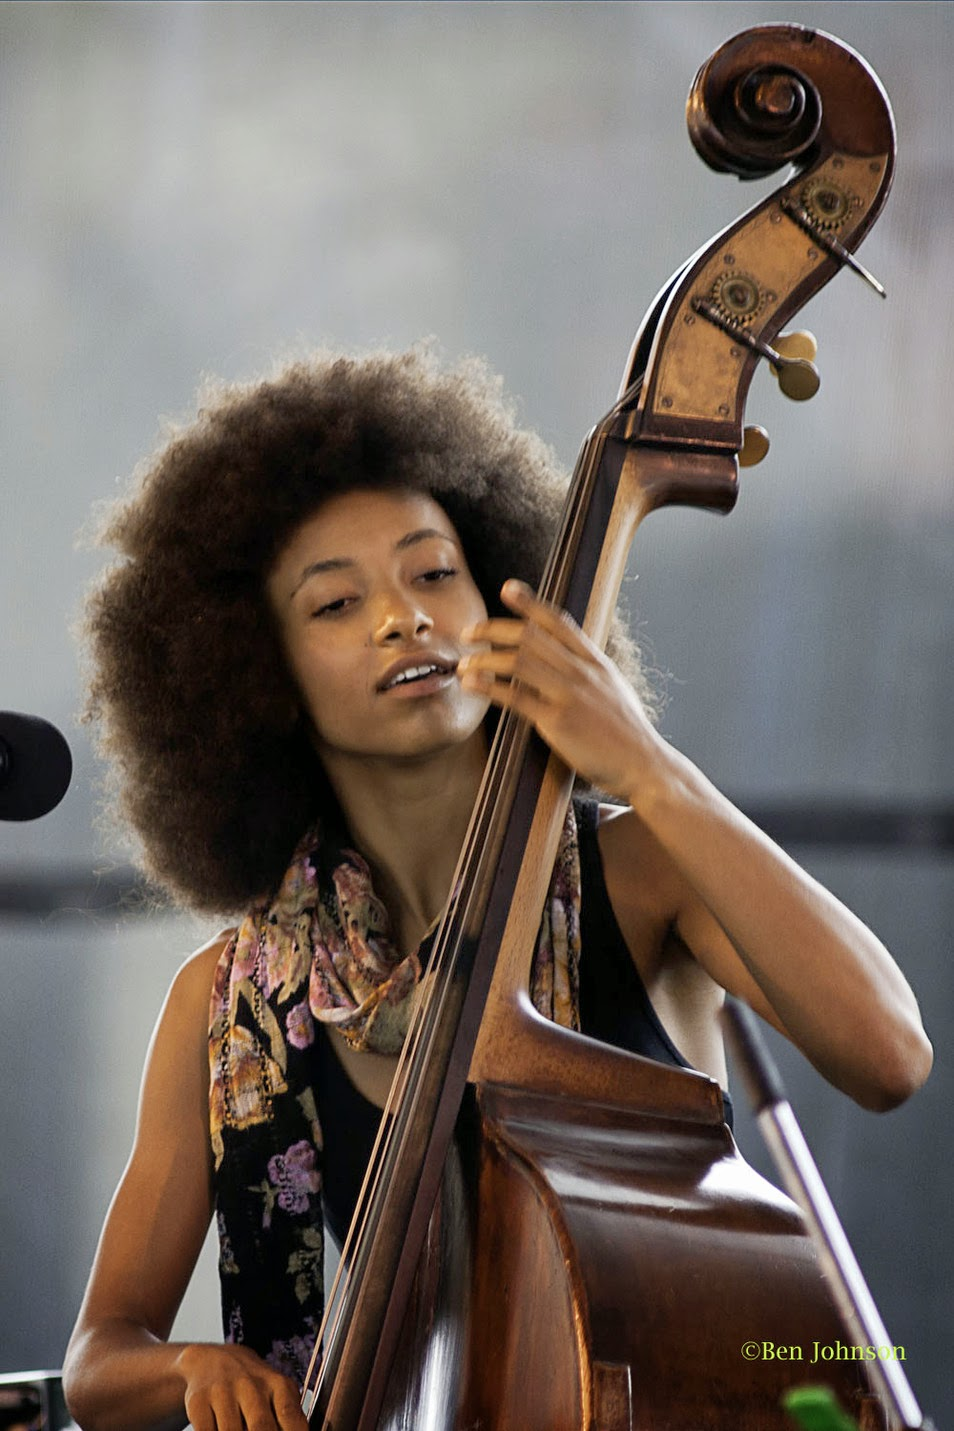 esperanza single men For her new work entitled 'exposure', composer, vocalist and bassist esperanza spalding will create a new album in just 77 hours every second of the process will be live streamed for you, right before your very eyes, letting you watch the album you've purchased be filled with the music she creates.